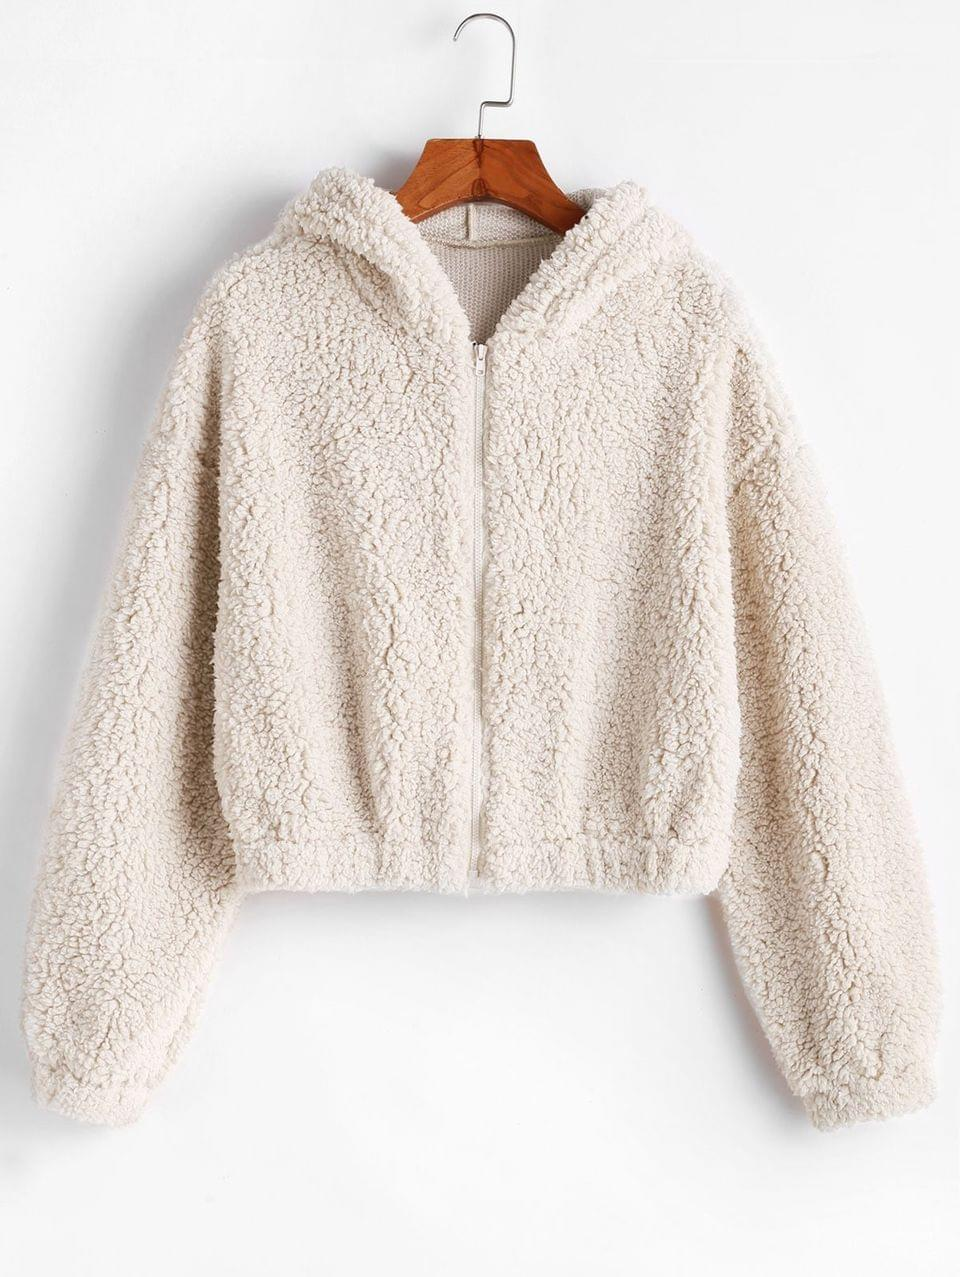 Women's Hooded Zip Up Fluffy Teddy Jacket - Milk White M